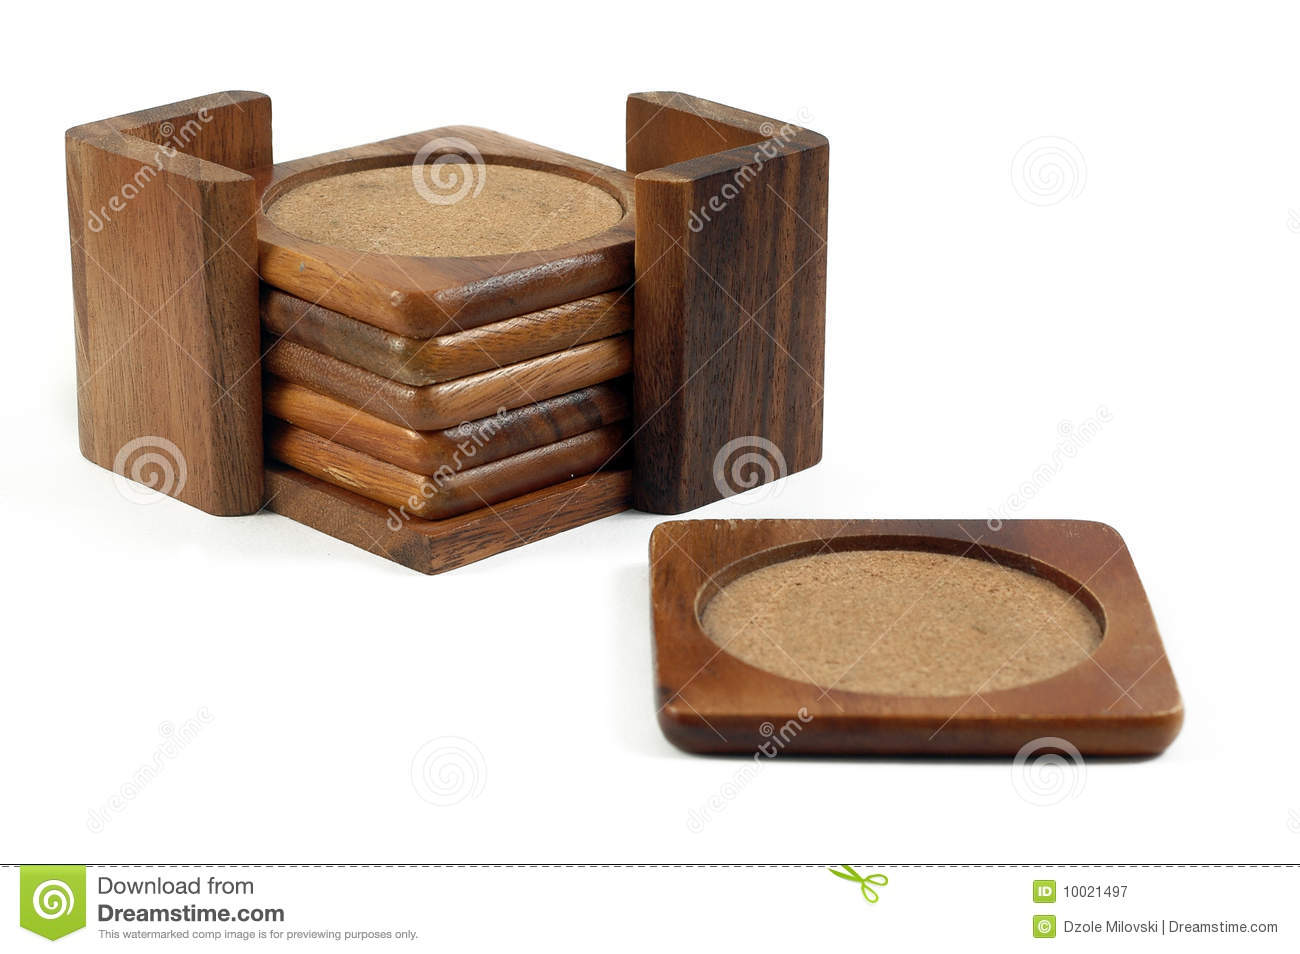 Beverage Coasters Wooden Coasters Stock Image Image Of Clipping Decorative